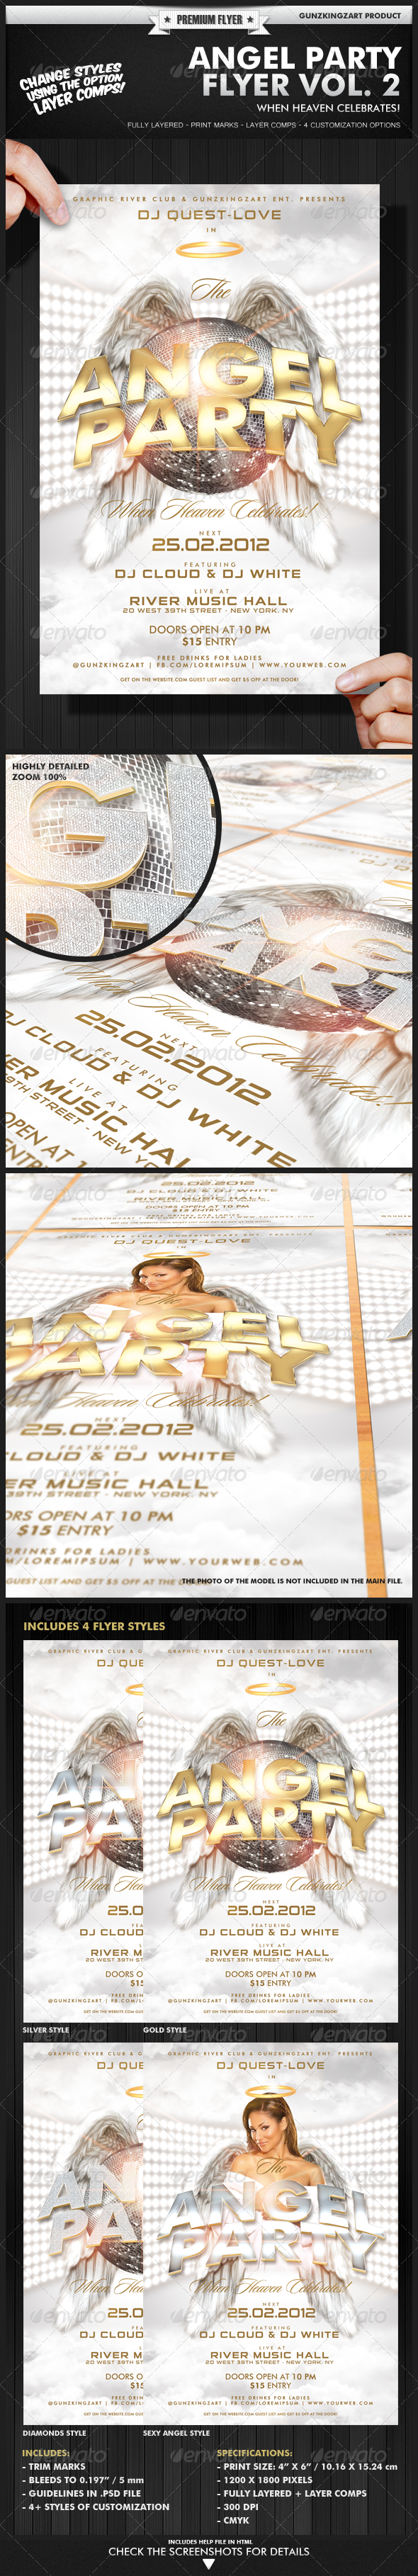 Angel Party Flyer Vol. 2 - Clubs &amp; Parties Events